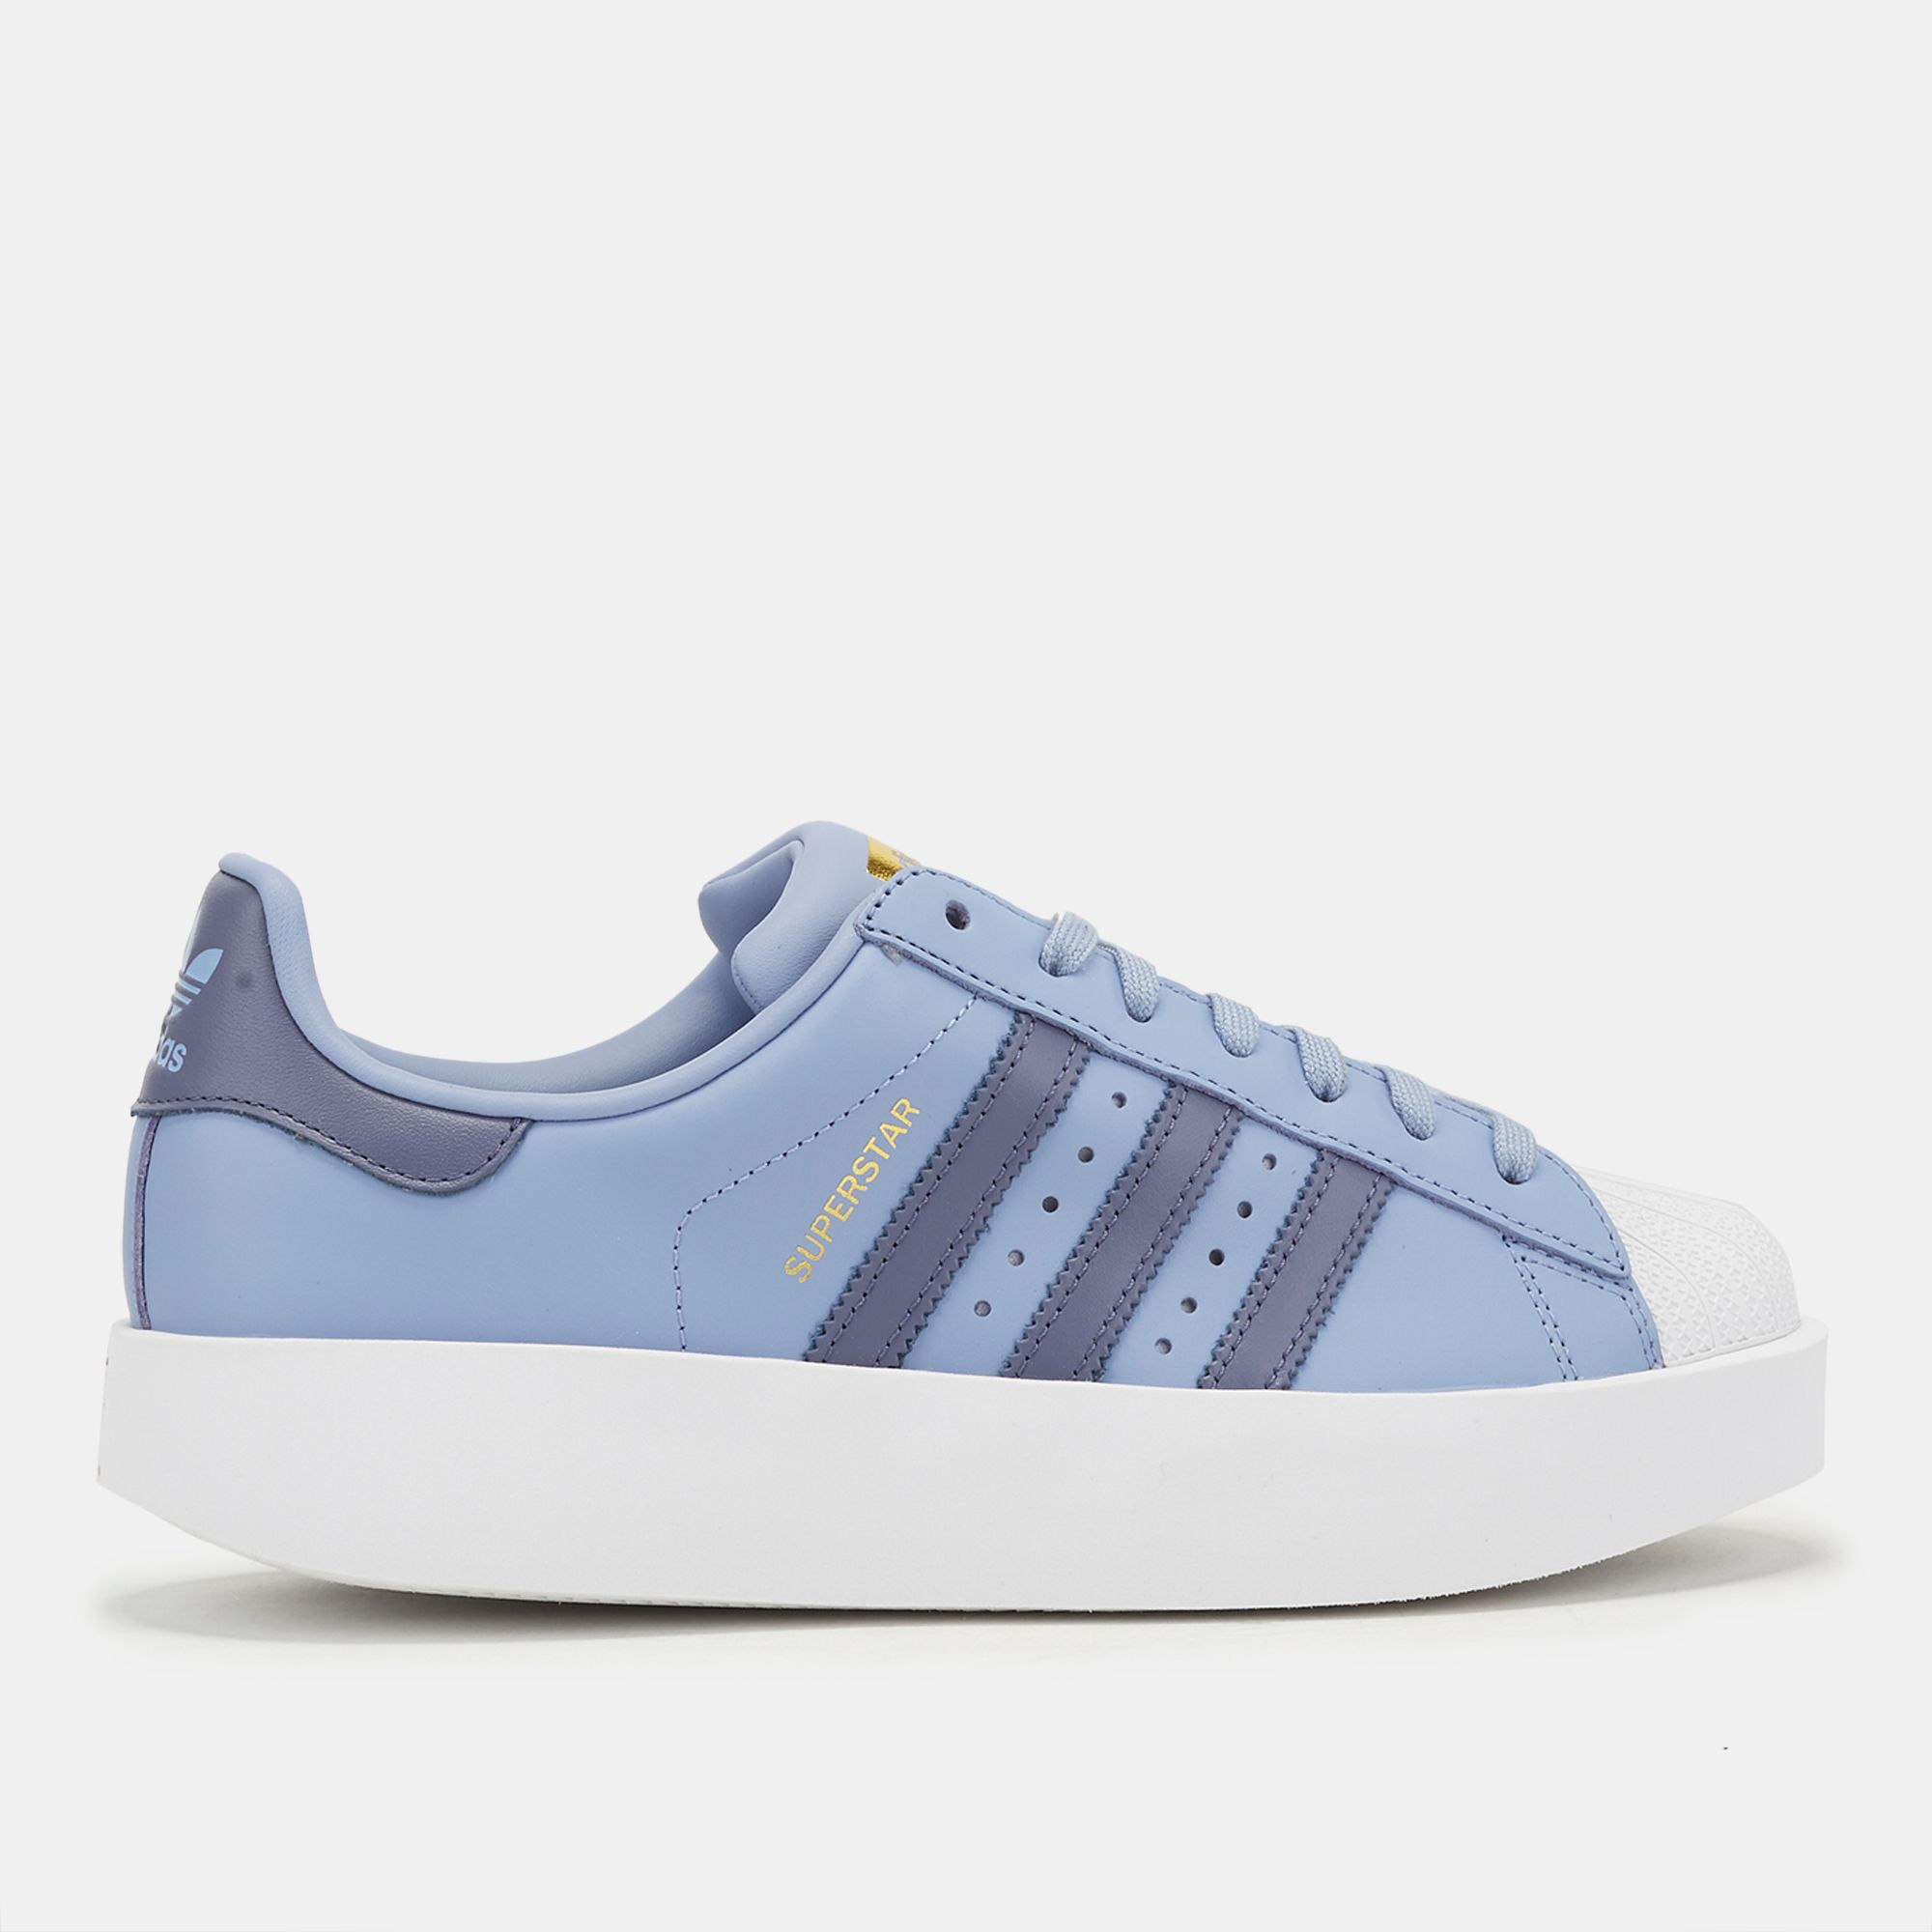 c2c2c1730e23 Adidas Originals Superstar Bold Platform Shoe Adft Cq2825 in Kuwait ...